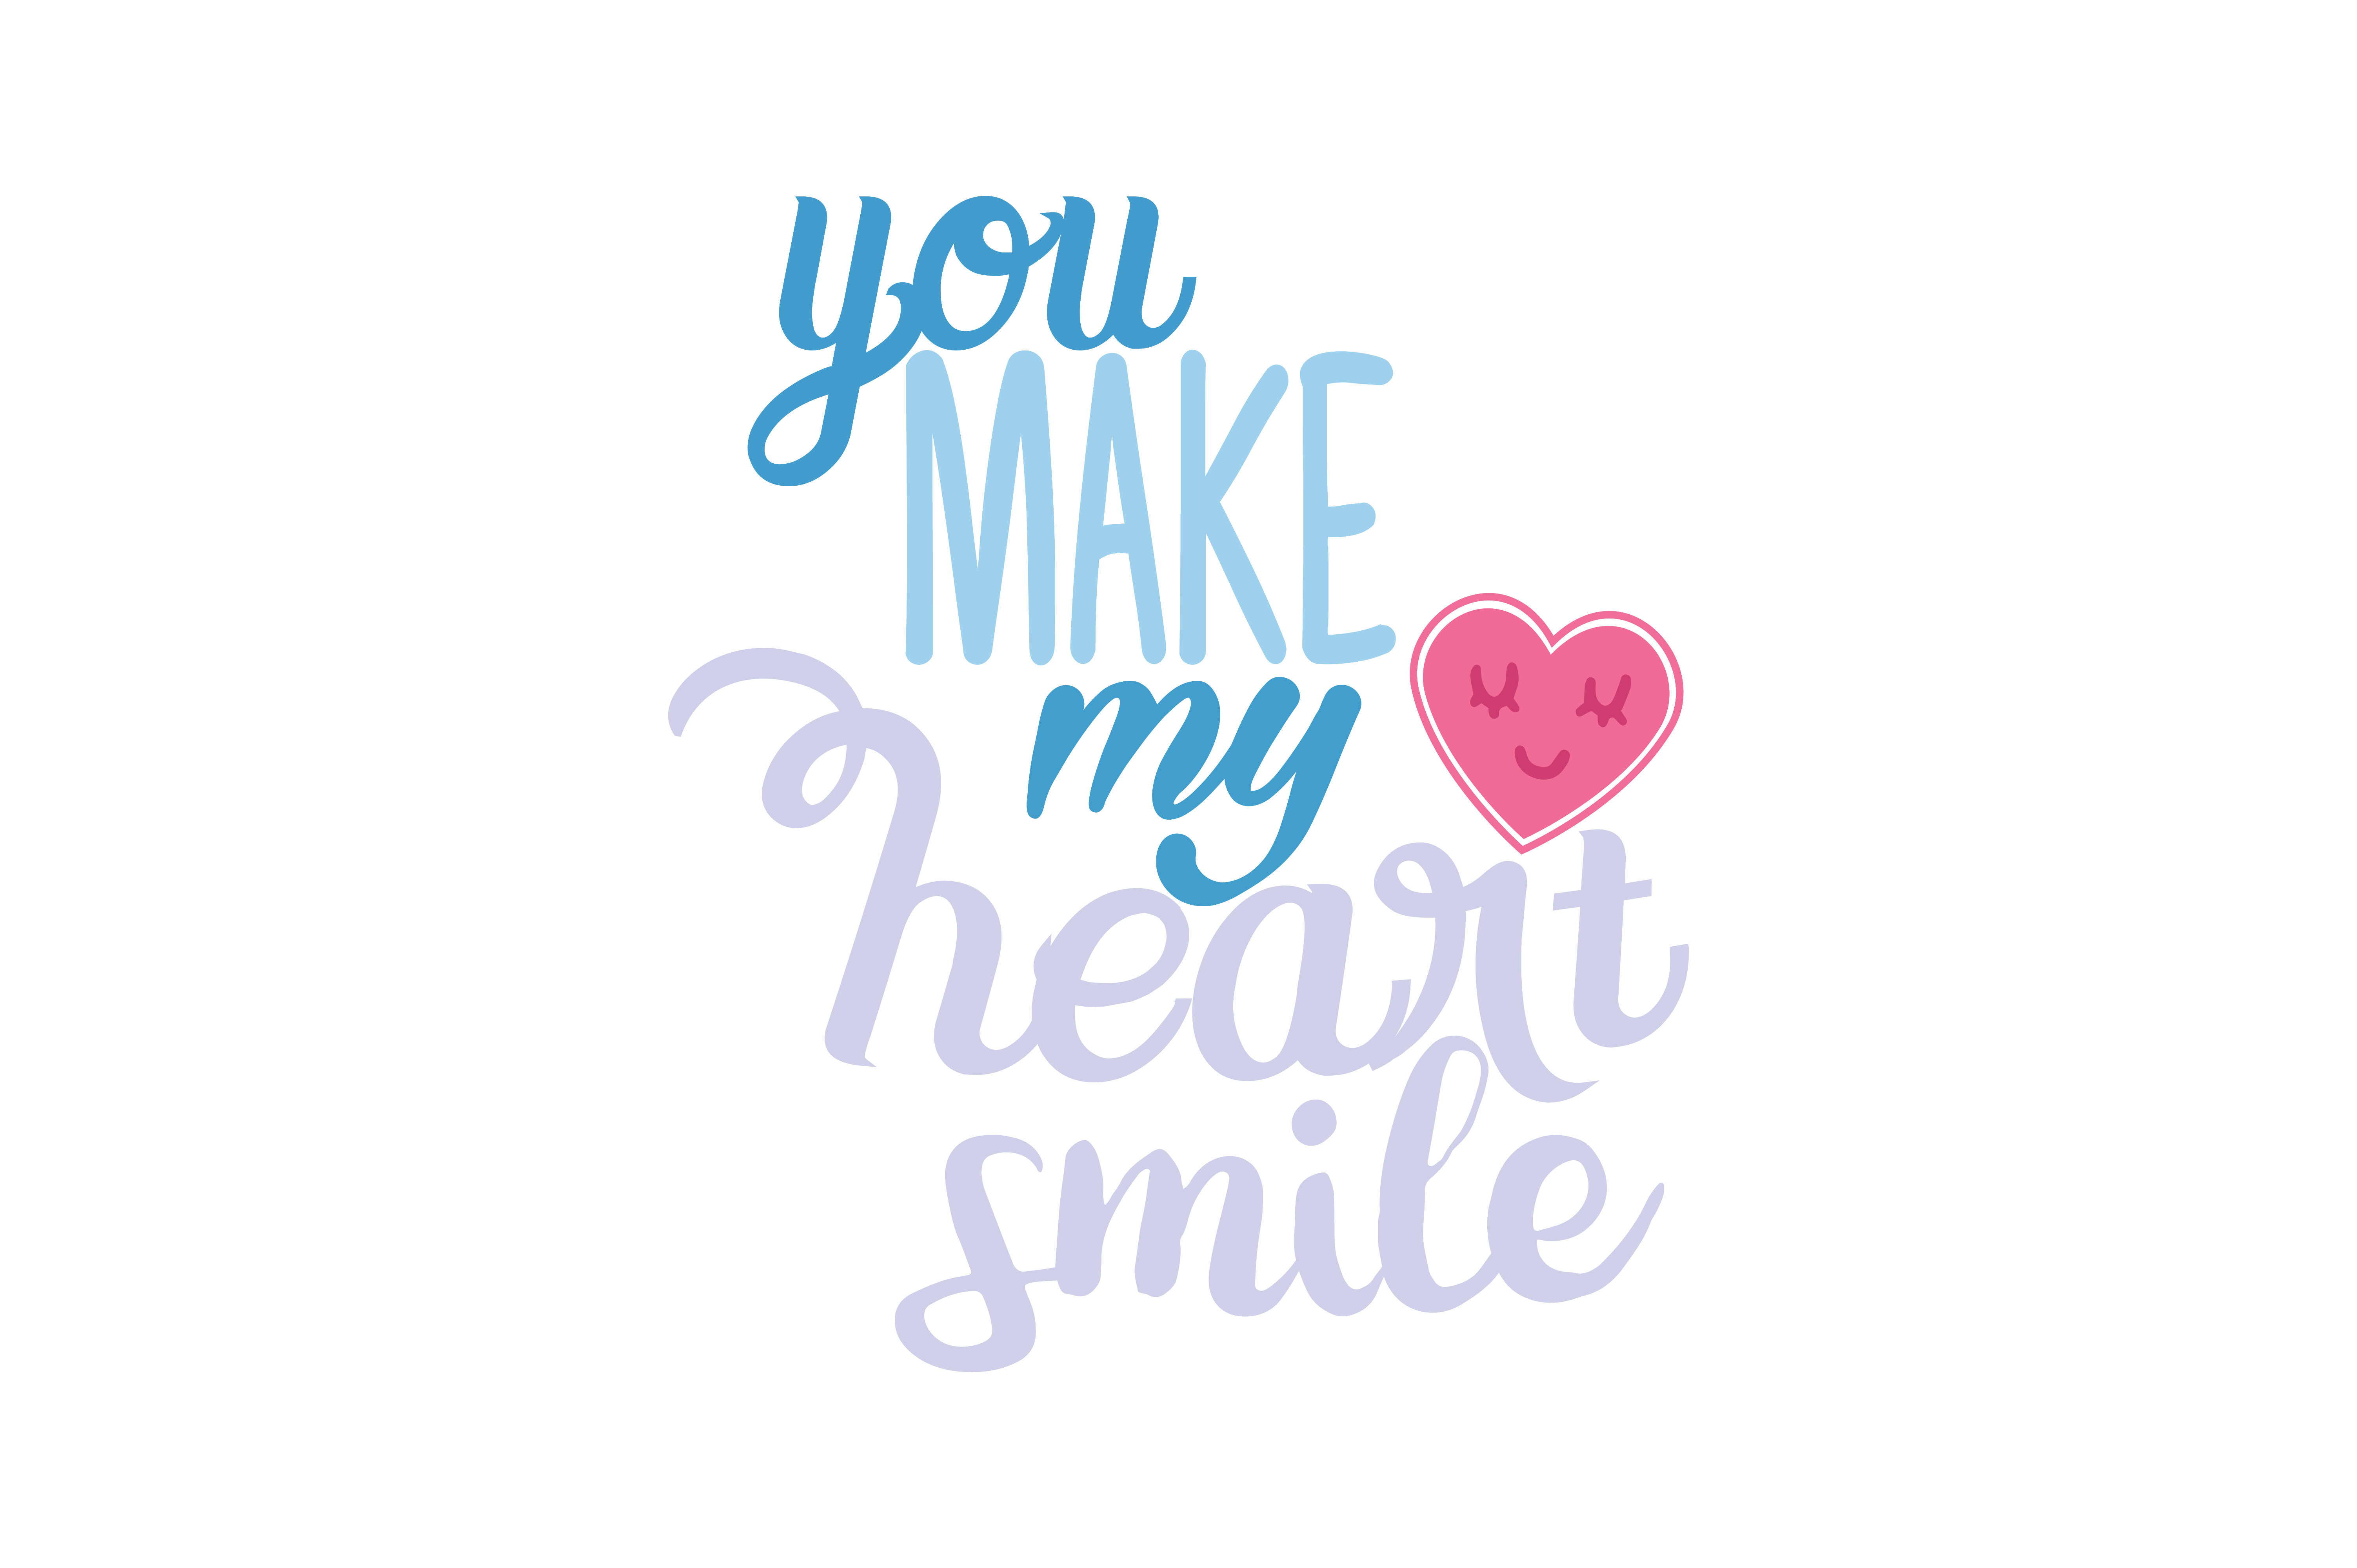 Download Free You Make My Heart Smile Quote Svg Cut Graphic By Thelucky Creative Fabrica for Cricut Explore, Silhouette and other cutting machines.